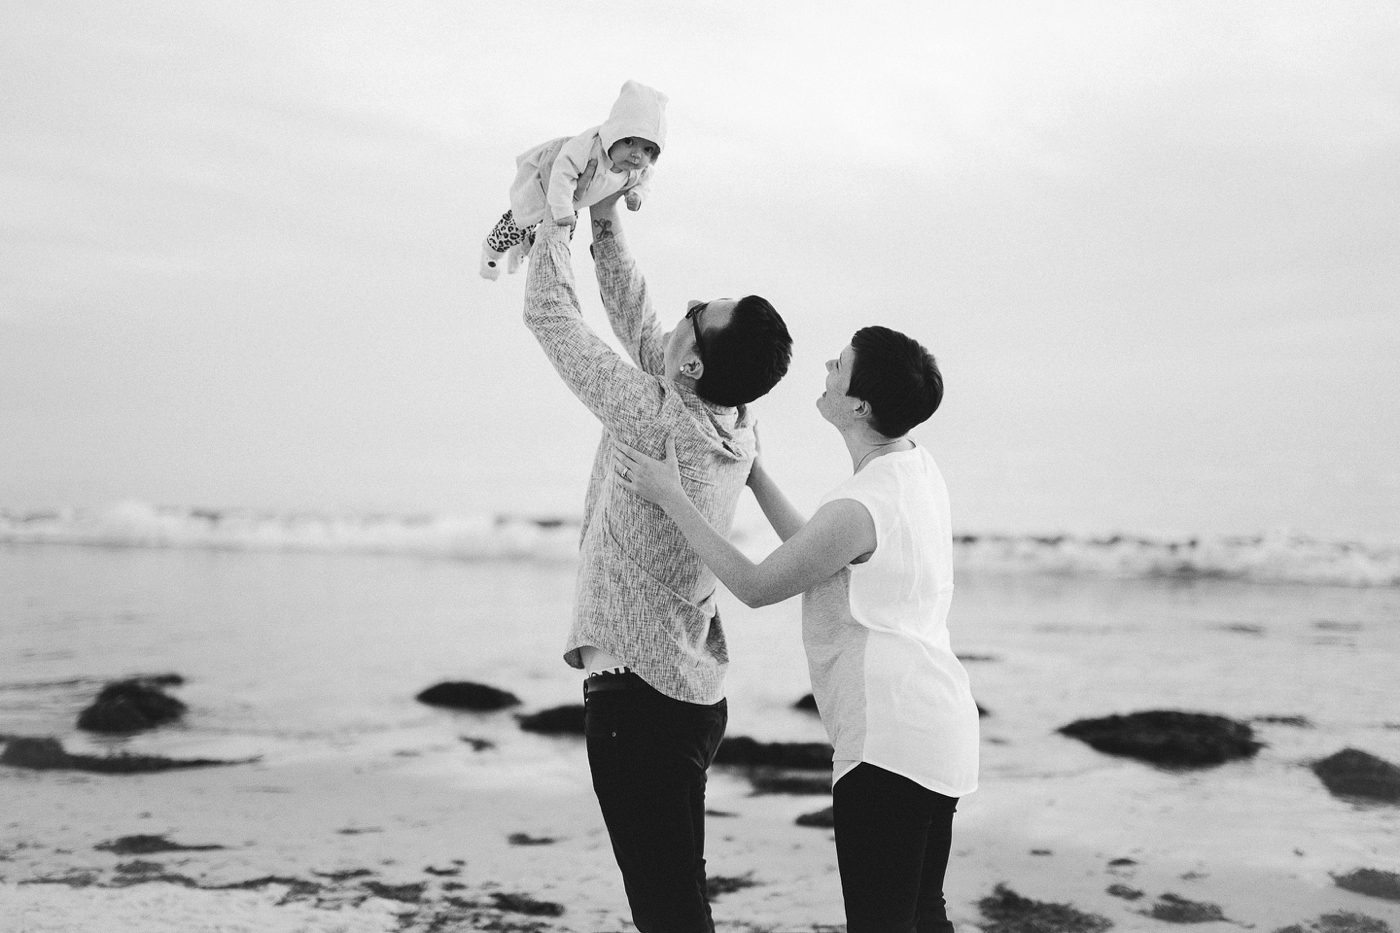 Kingsborough Family - Natural light, candid Family Photographer in Adelaide - Katherine Schultz - www.katherineschultzphotography.com 10